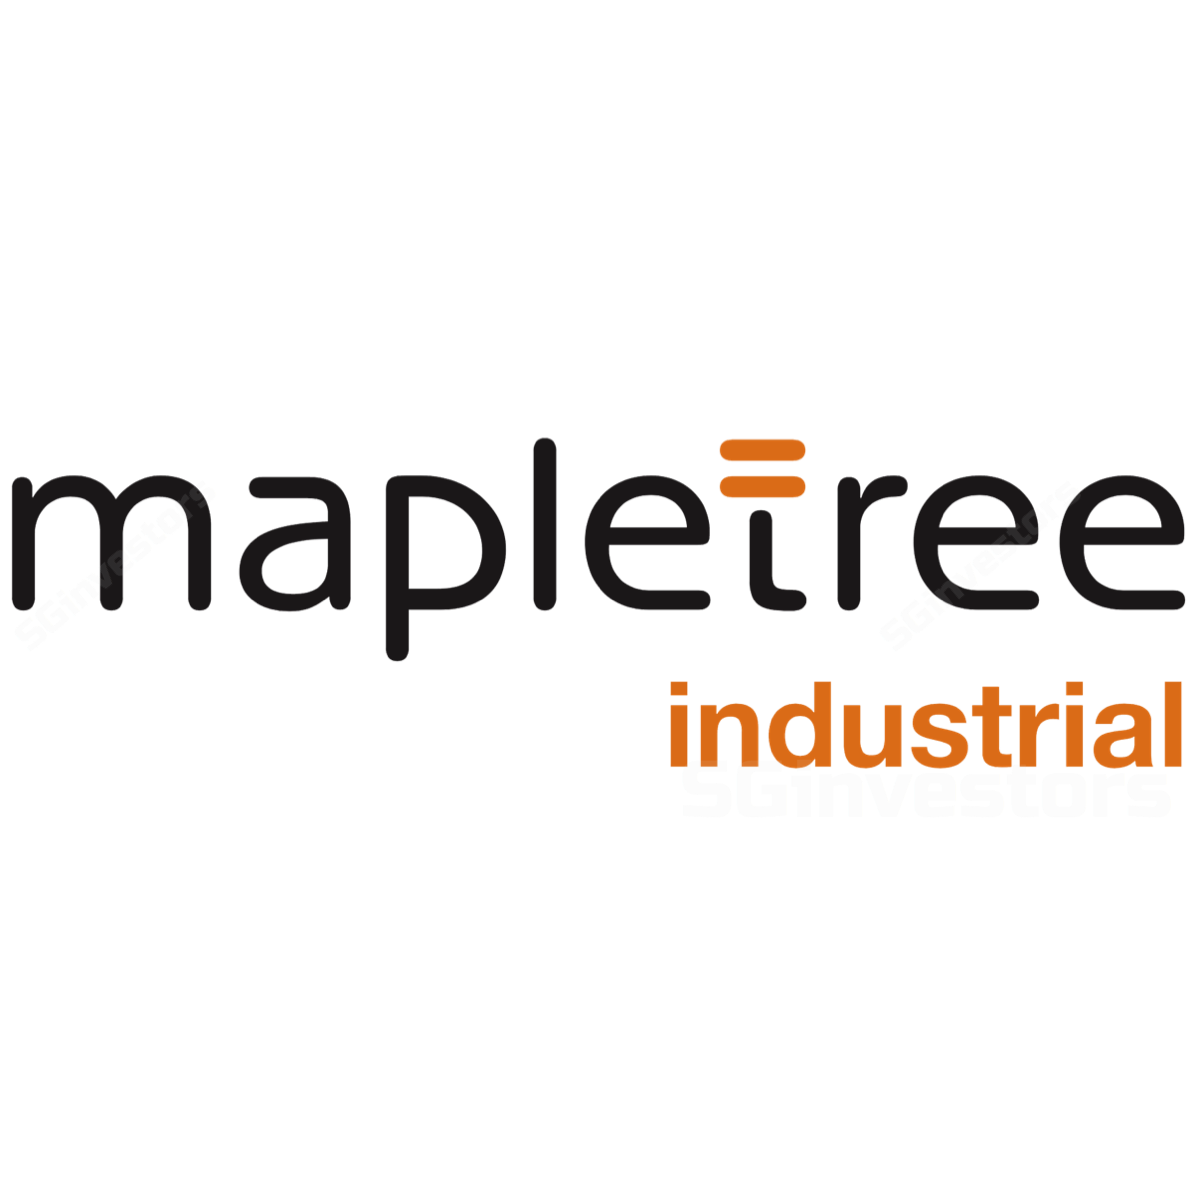 Mapletree Industrial Trust - Phillip Securities 2016-11-29: Price weakness presents attractive valuation